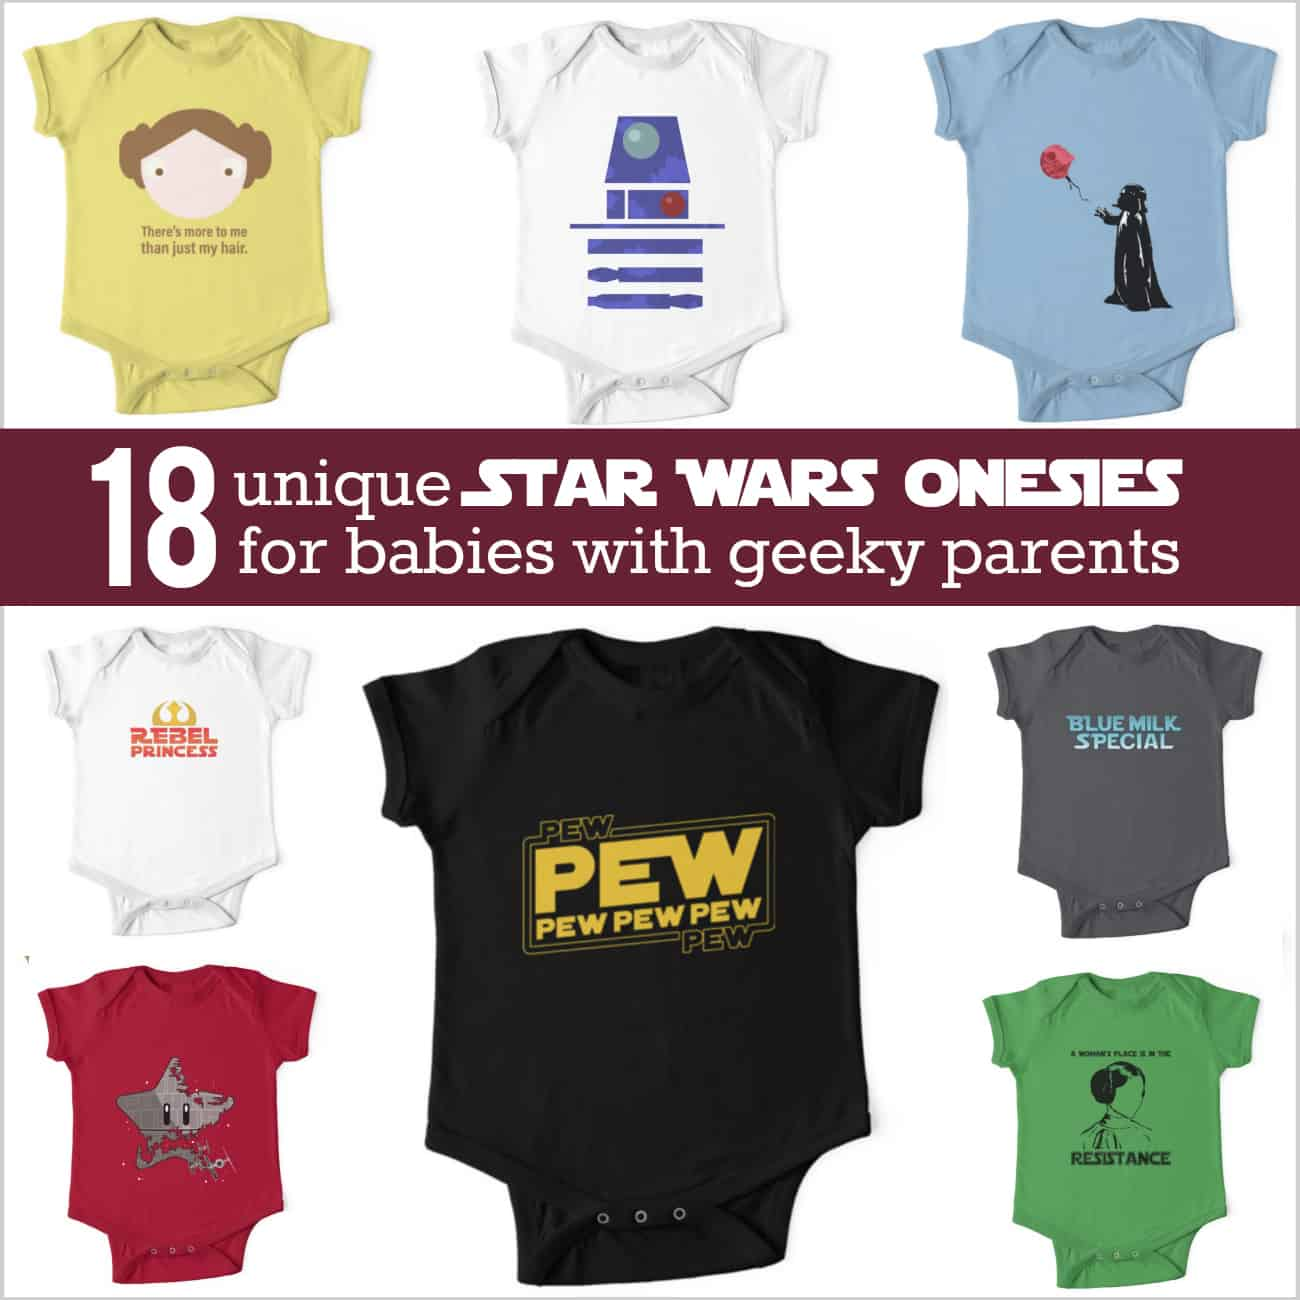 70504bac2 The Cutest Star Wars Onesie: 18 Adorable Shirts for the Geeky Baby